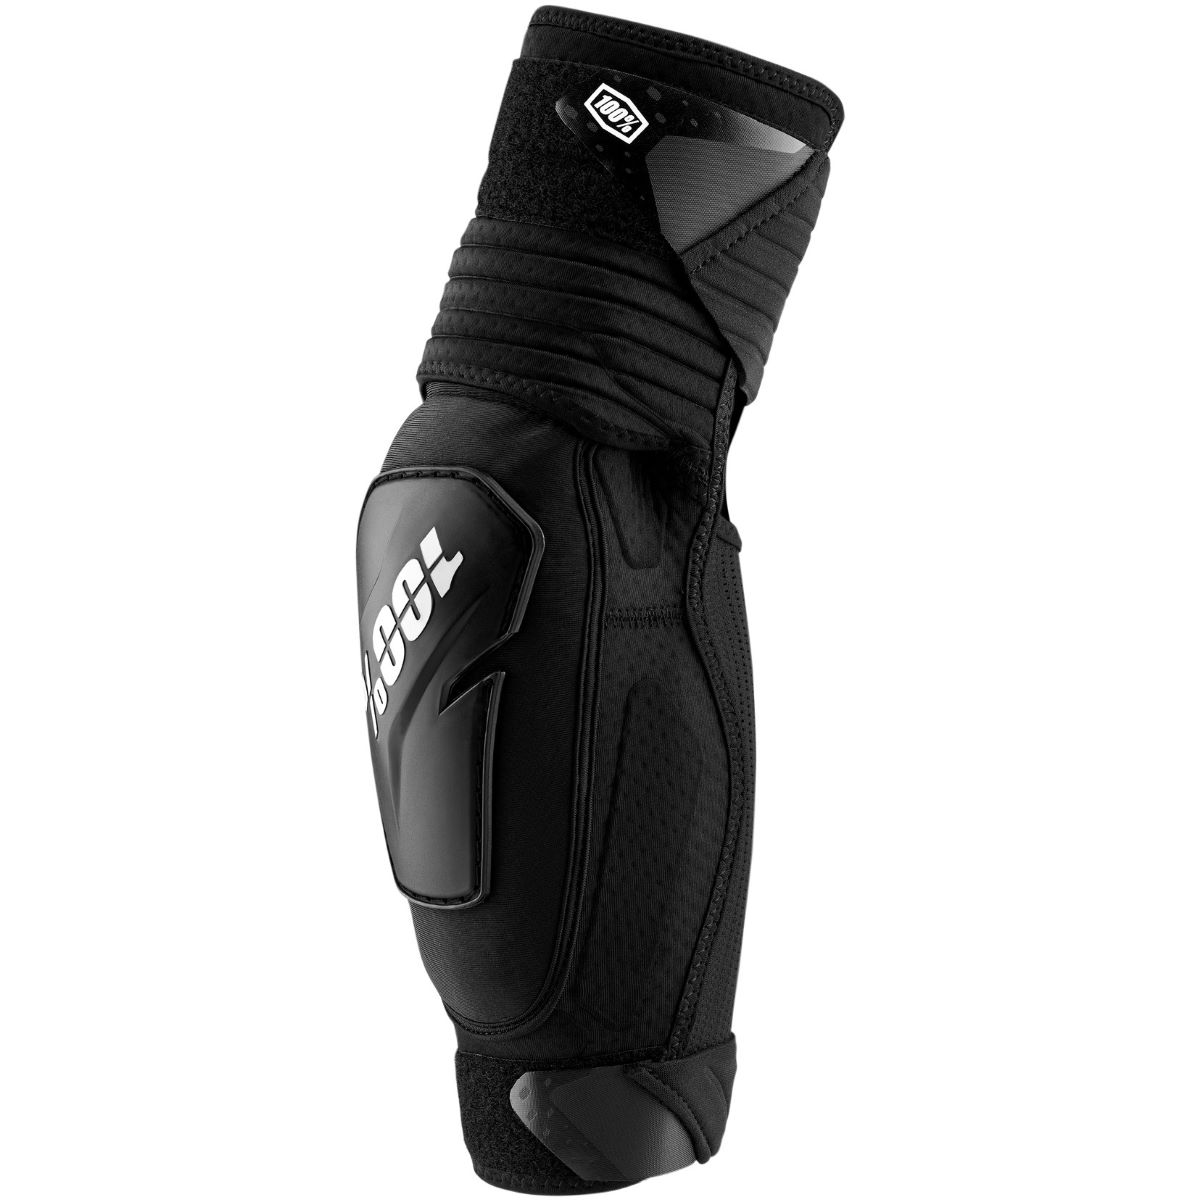 100% Fortis Elbow Guard - S/m Black  Elbow Pads